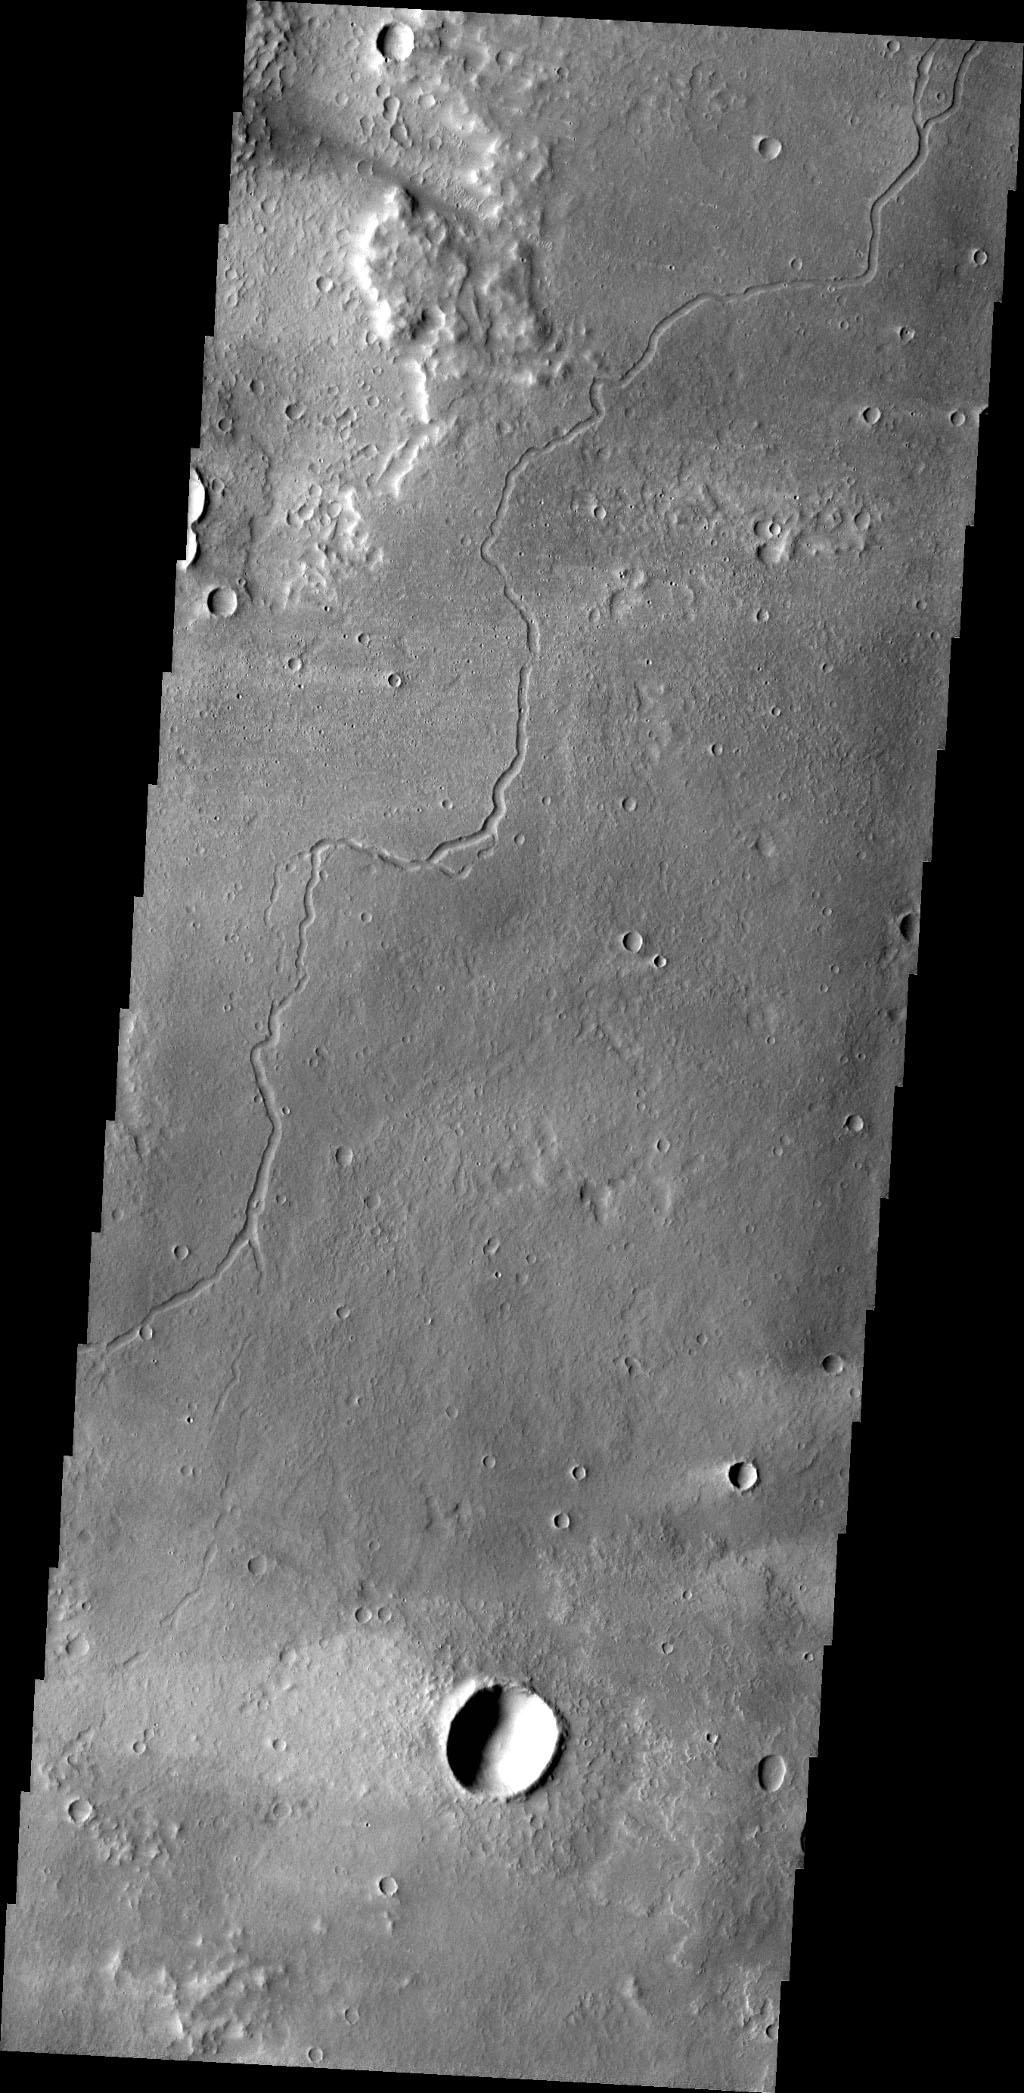 This image from NASA's 2001 Mars Odyssey spacecraft shows a channel carved by lava on Mars. This channel is located northeast of Olympus Mons.